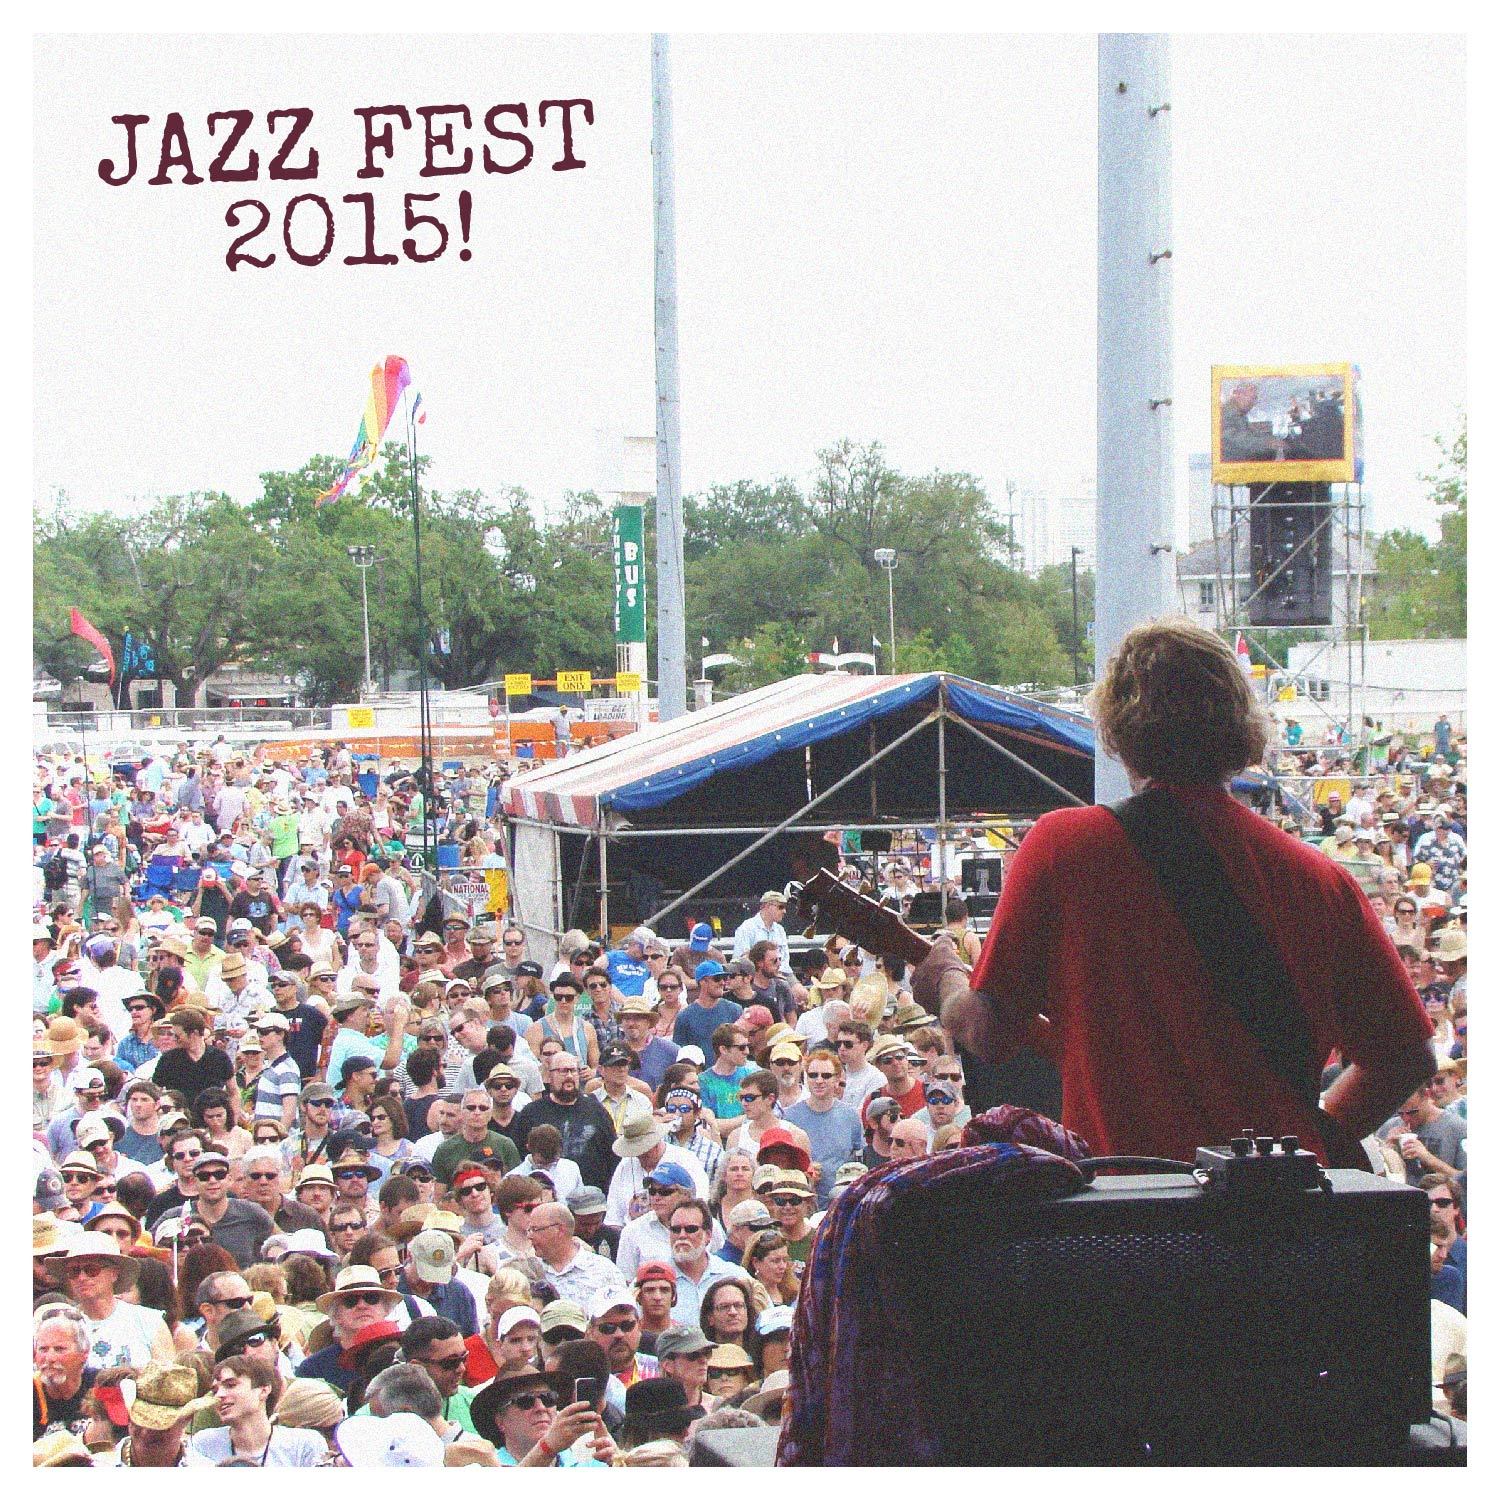 Jazz Fest is right around the corner! Make sure to mark your calendars with all of Anders' performances:  4/24 Friday- House of Blues 8PM  4/25 Saturday- Howlin' Wolf w/ Dead Feat 10PM  4/26 Sunday- Howlin' Wolf w/ Dead Feat 10PM  4/27 Monday- Tipitina'sfor Instruments a Comin' w/ Galactic 8PM  4/28 Tuesday - Chickie Wah Wah w/ John Fohl & Johnny Sansone 8PM & 10PM  5/01 Friday - Republic NOLA sitting in with Tab Benoit 9PM  5/02 Saturday - Howlin' Wolf 11PM  5/03 Sunday - Jazz Fest Set - Acura Stage 12:25PM  tickets for all shows here.